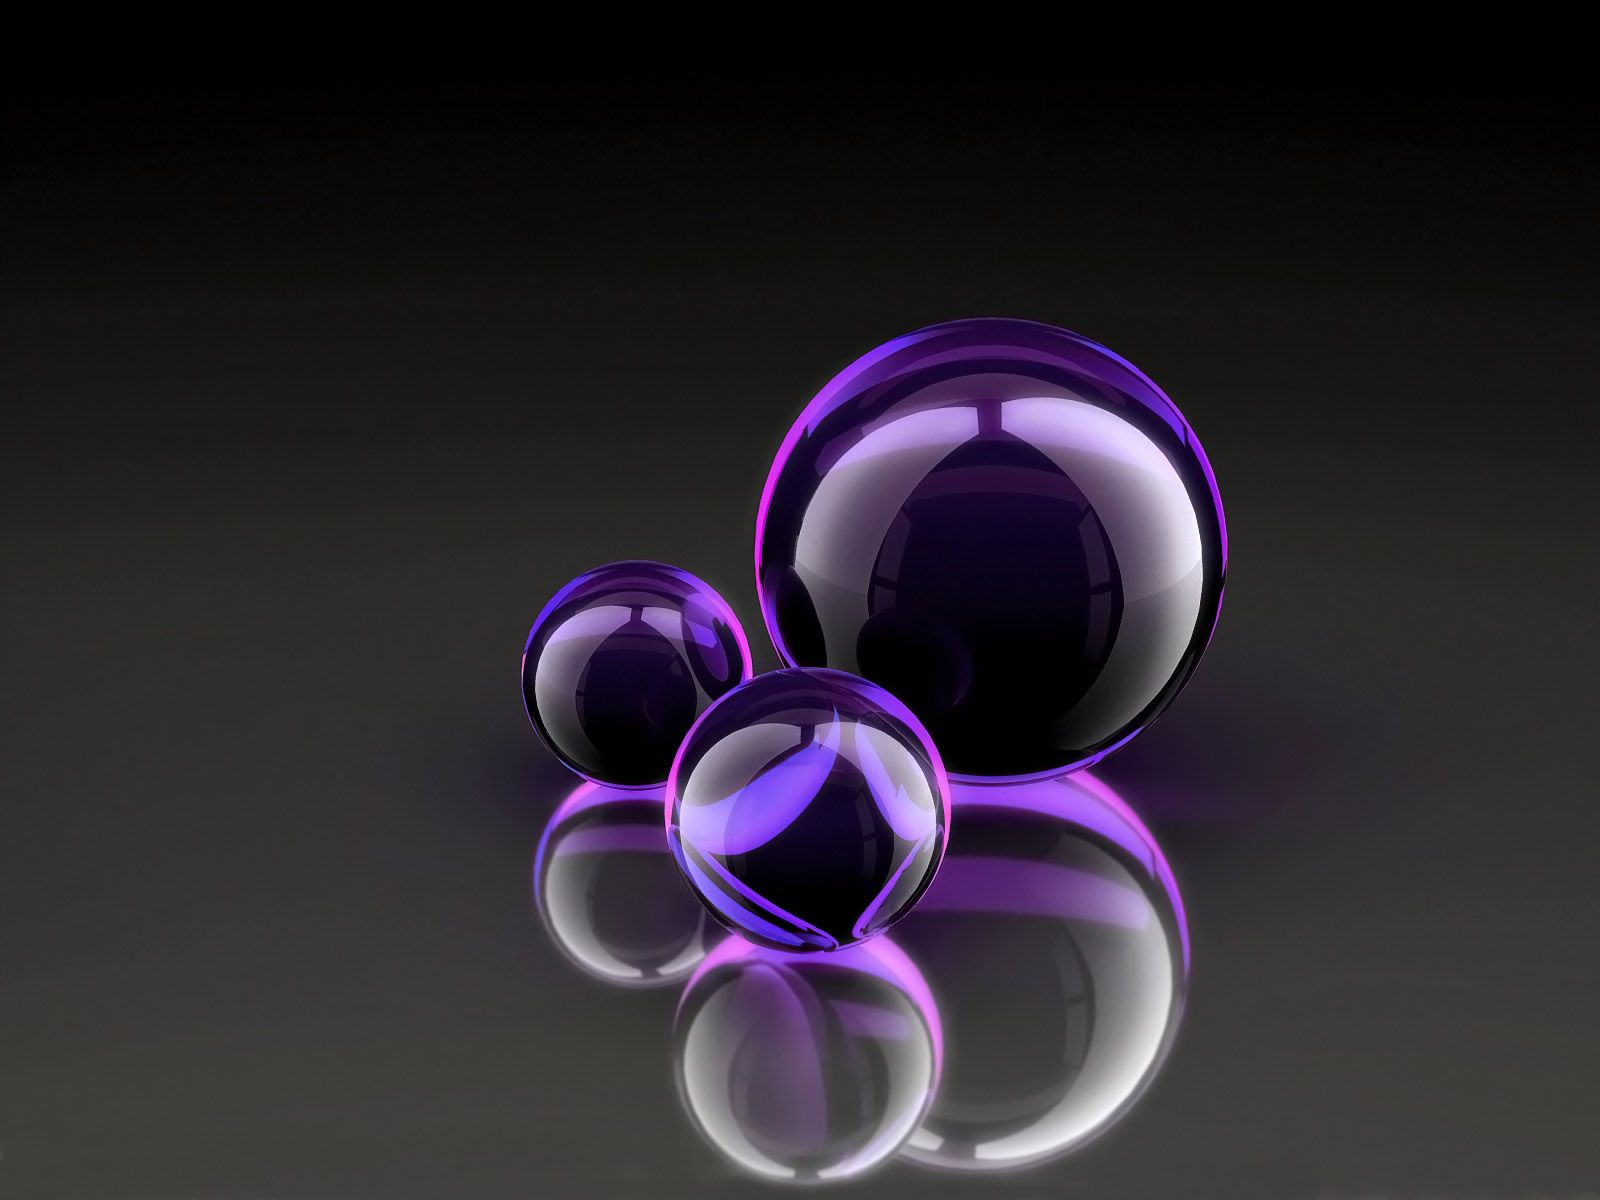 hd-3d-ball-purple-wallpaper.jpg (1600テ1200)